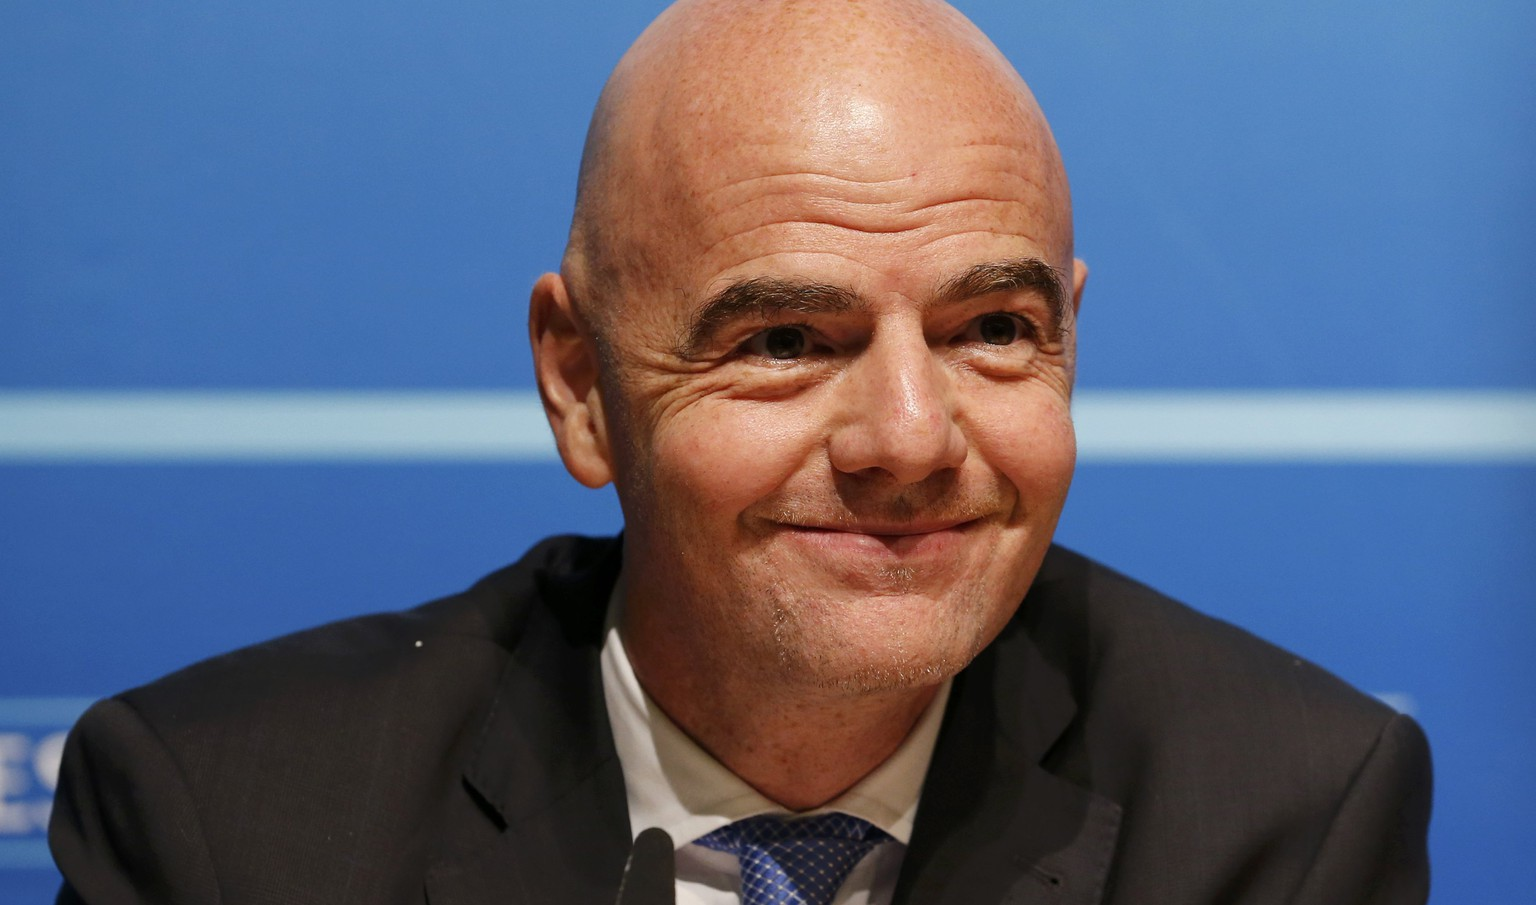 UEFA General Secretary Gianni Infantino attends a news conference after an Executive Committee meeting at the UEFA headquarters in Nyon, Switzerland, January 22, 2016.  REUTERS/Denis Balibouse